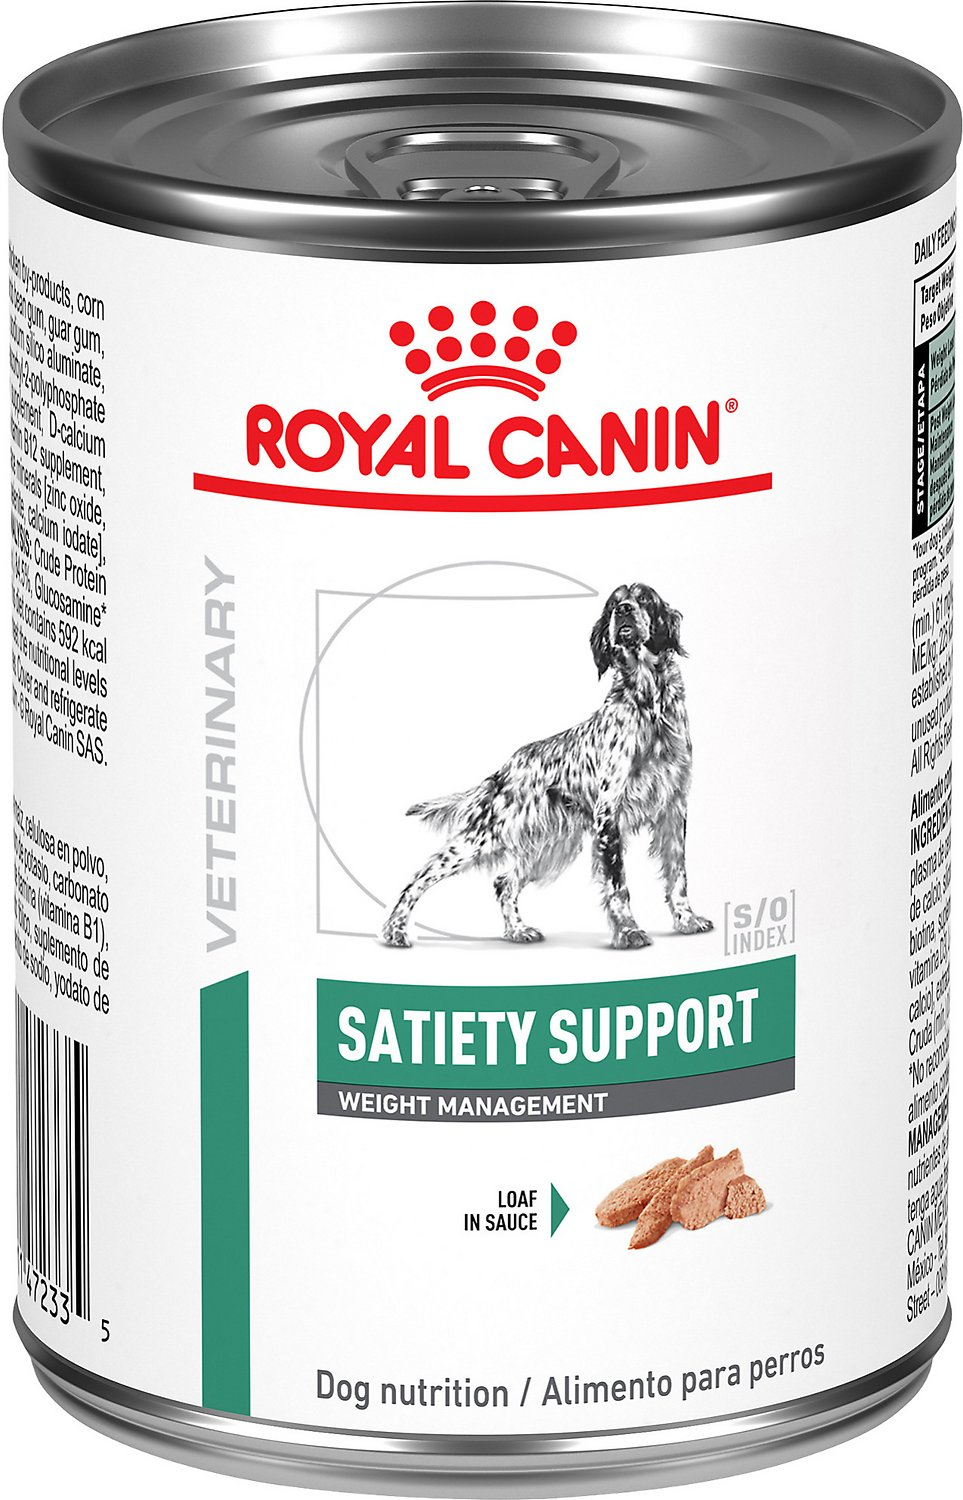 royal canin veterinary diet satiety support canned dog food 13 4 oz case of 24. Black Bedroom Furniture Sets. Home Design Ideas